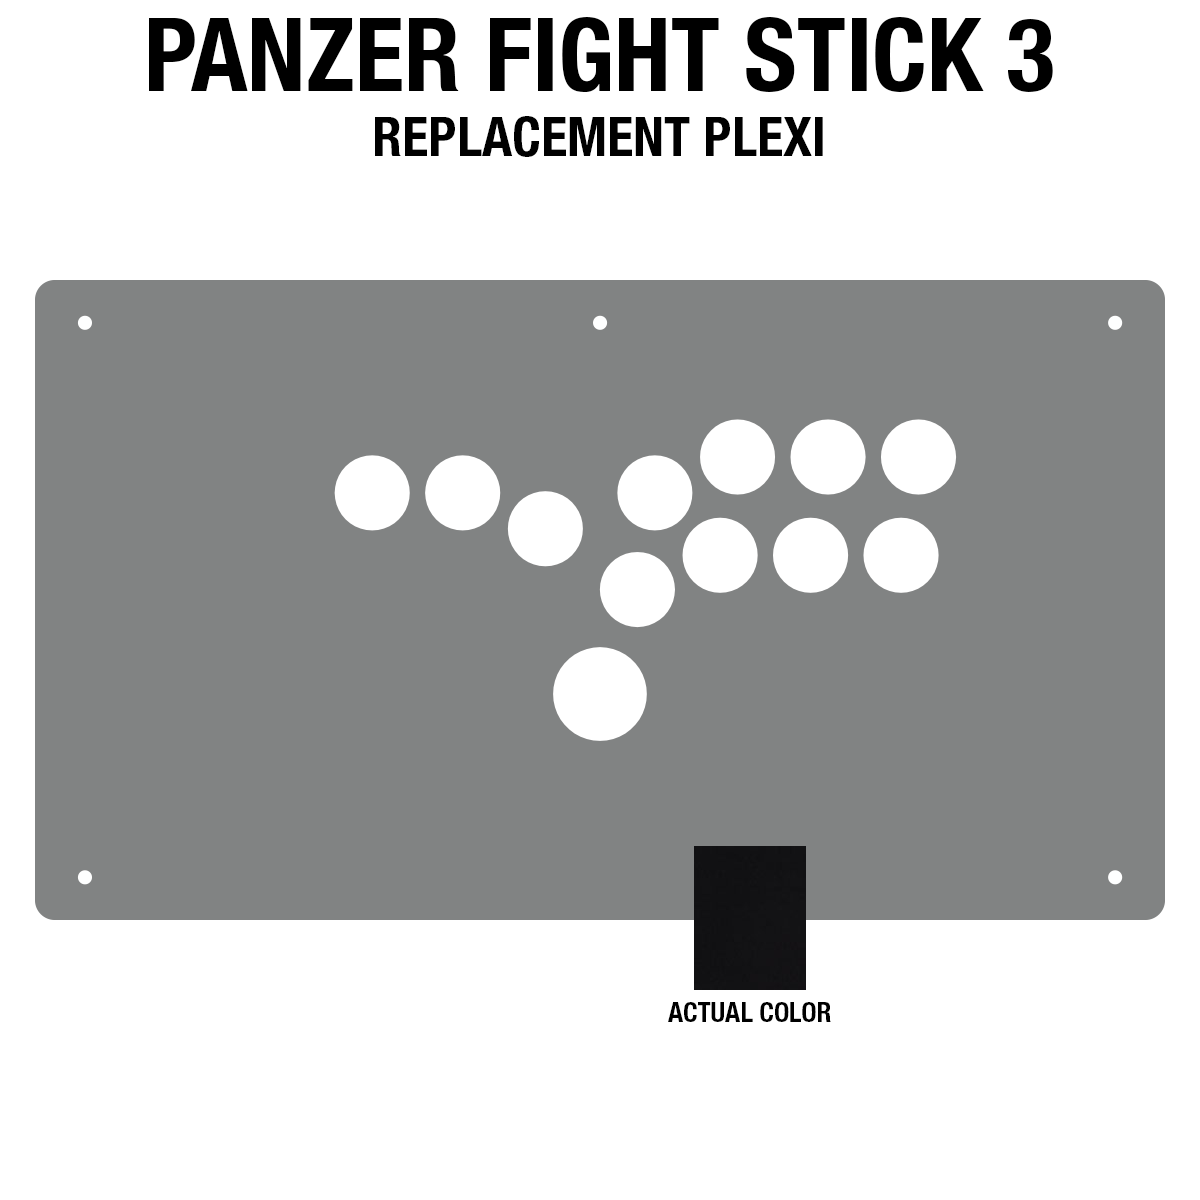 Panzer Fight Stick 3 [HITBOX] Plexi - Black Gloss (8 Buttons)